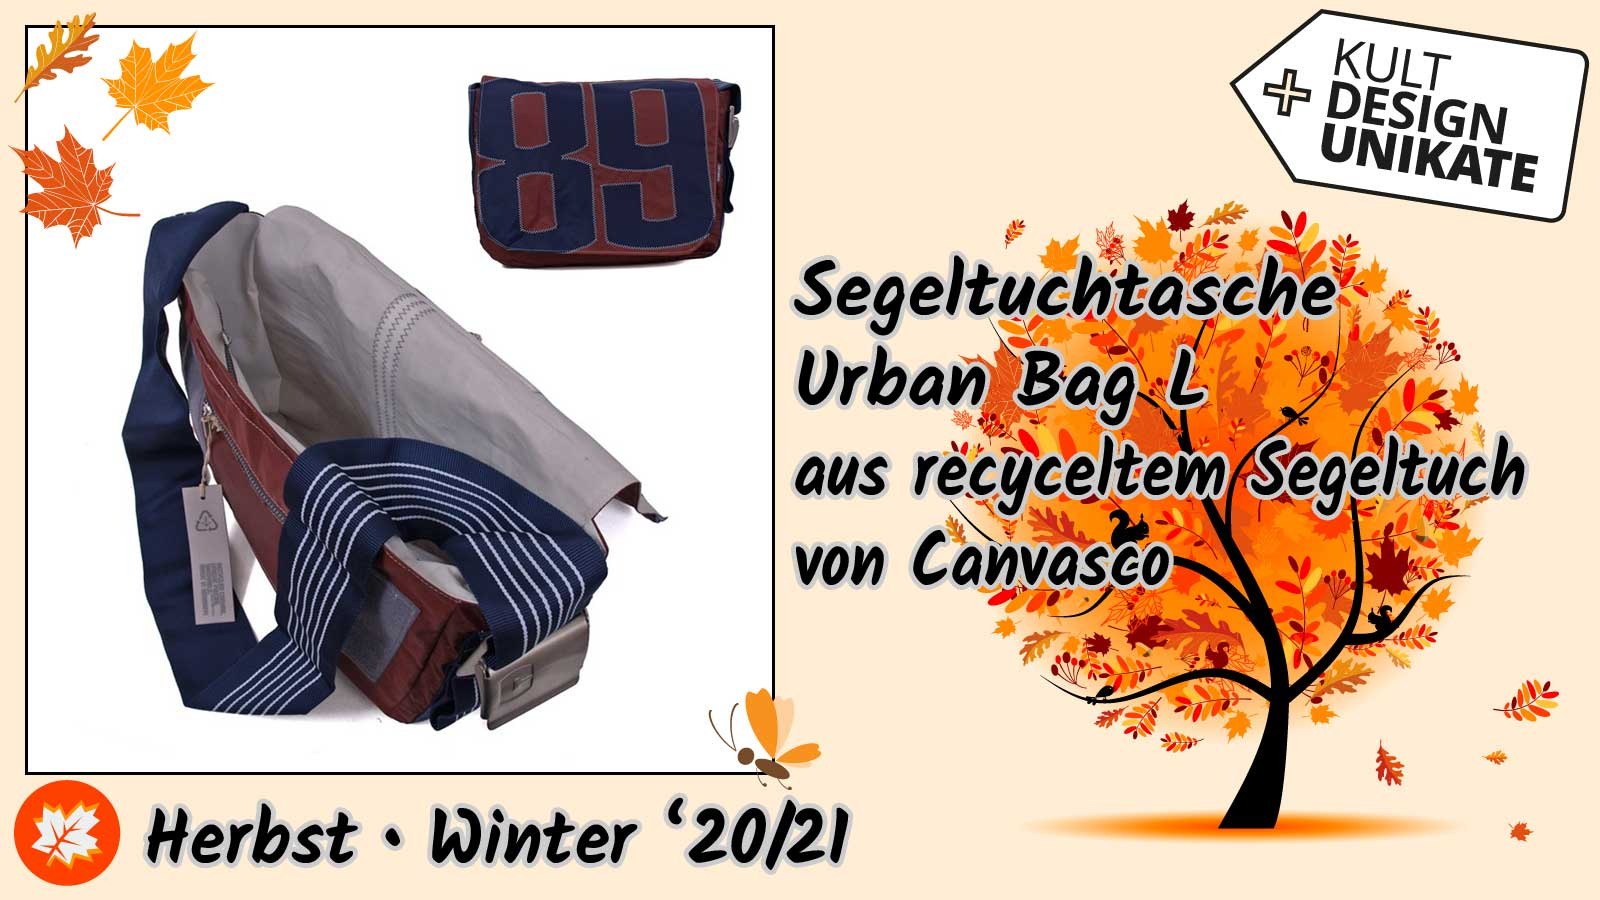 Canvasco-Segeltuchtasche-Urban-Bag-L